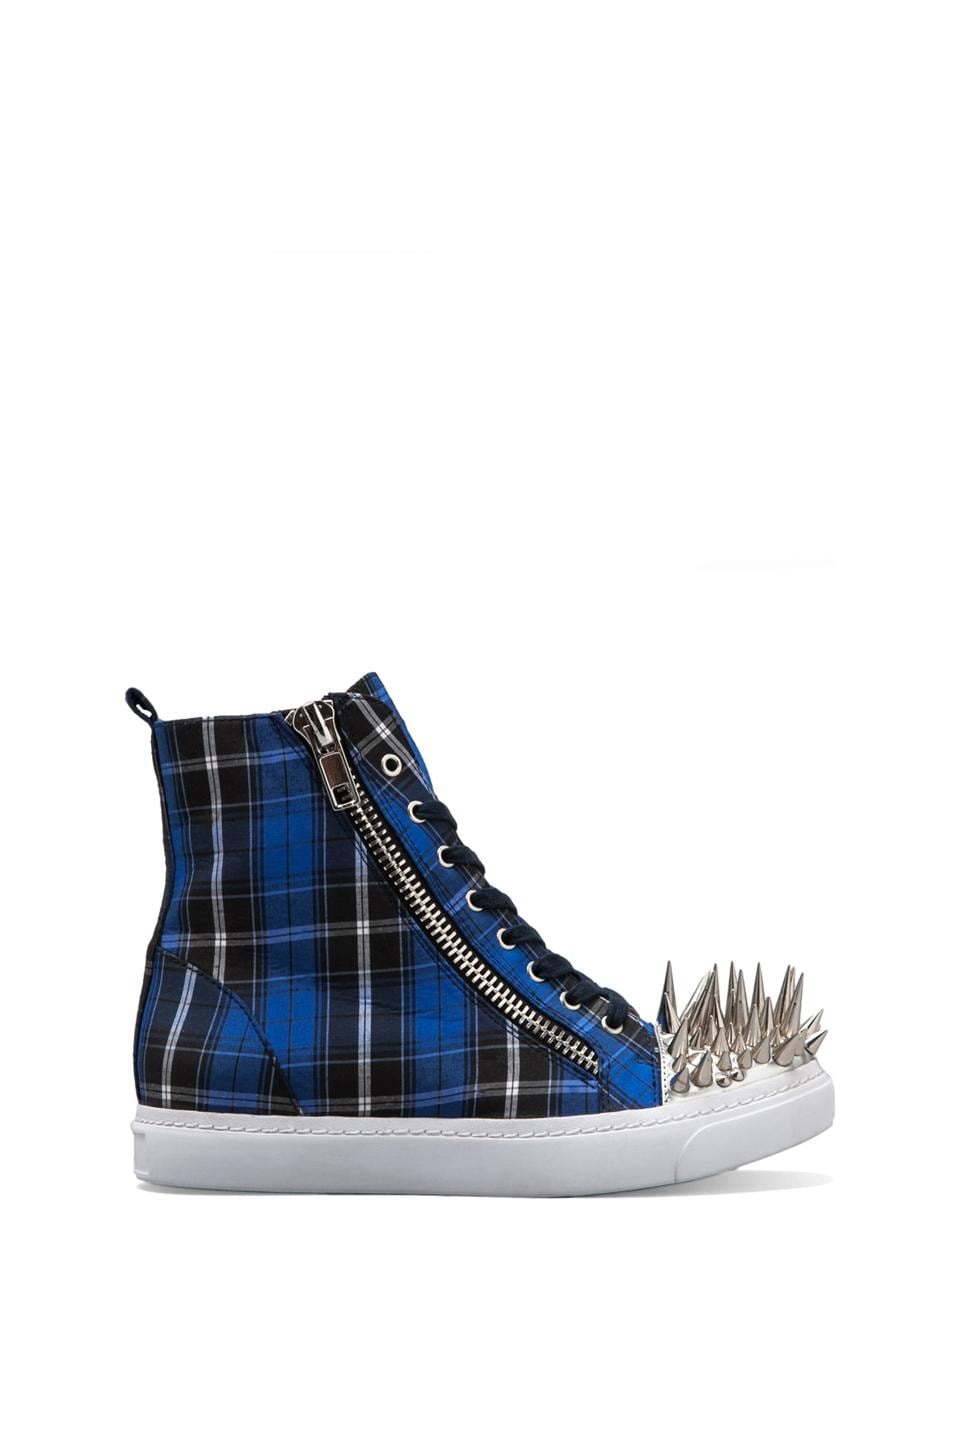 Jeffrey Campbell Adams Hi-Top Sneaker in Blue Plaid/Silver